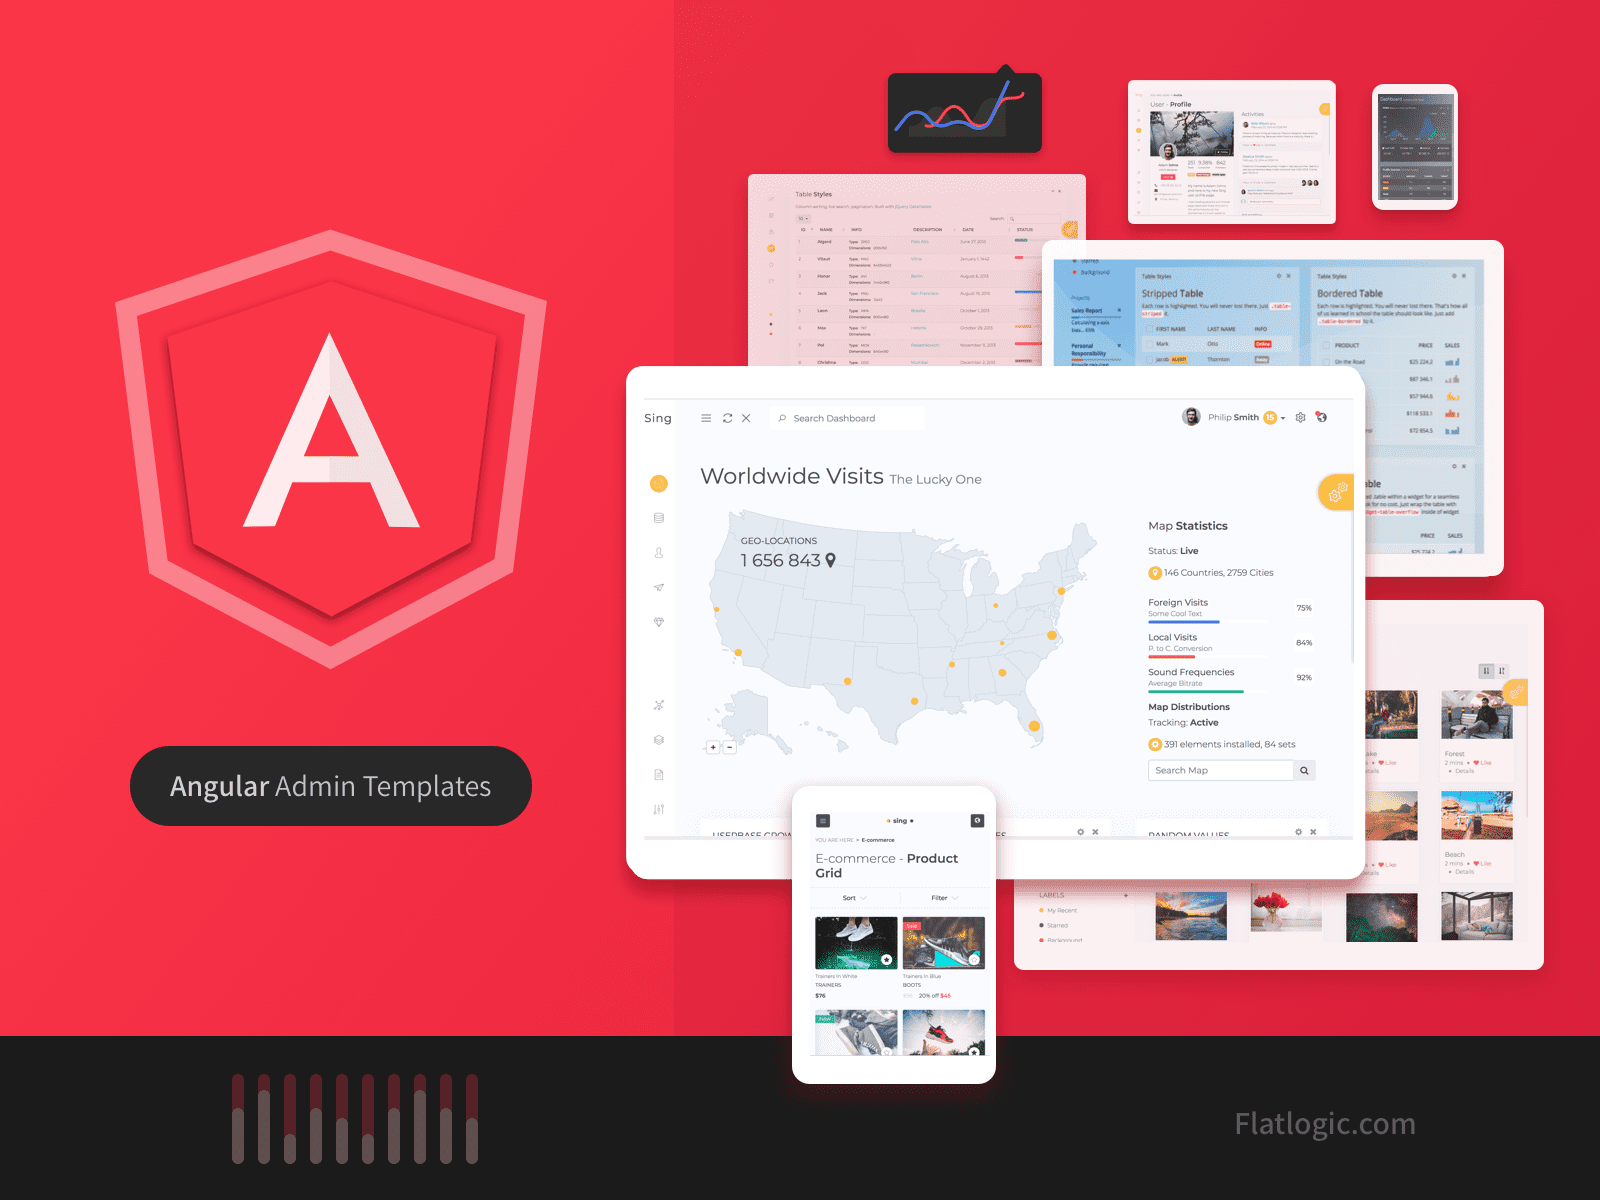 Top Angular Admin Templates in 2020